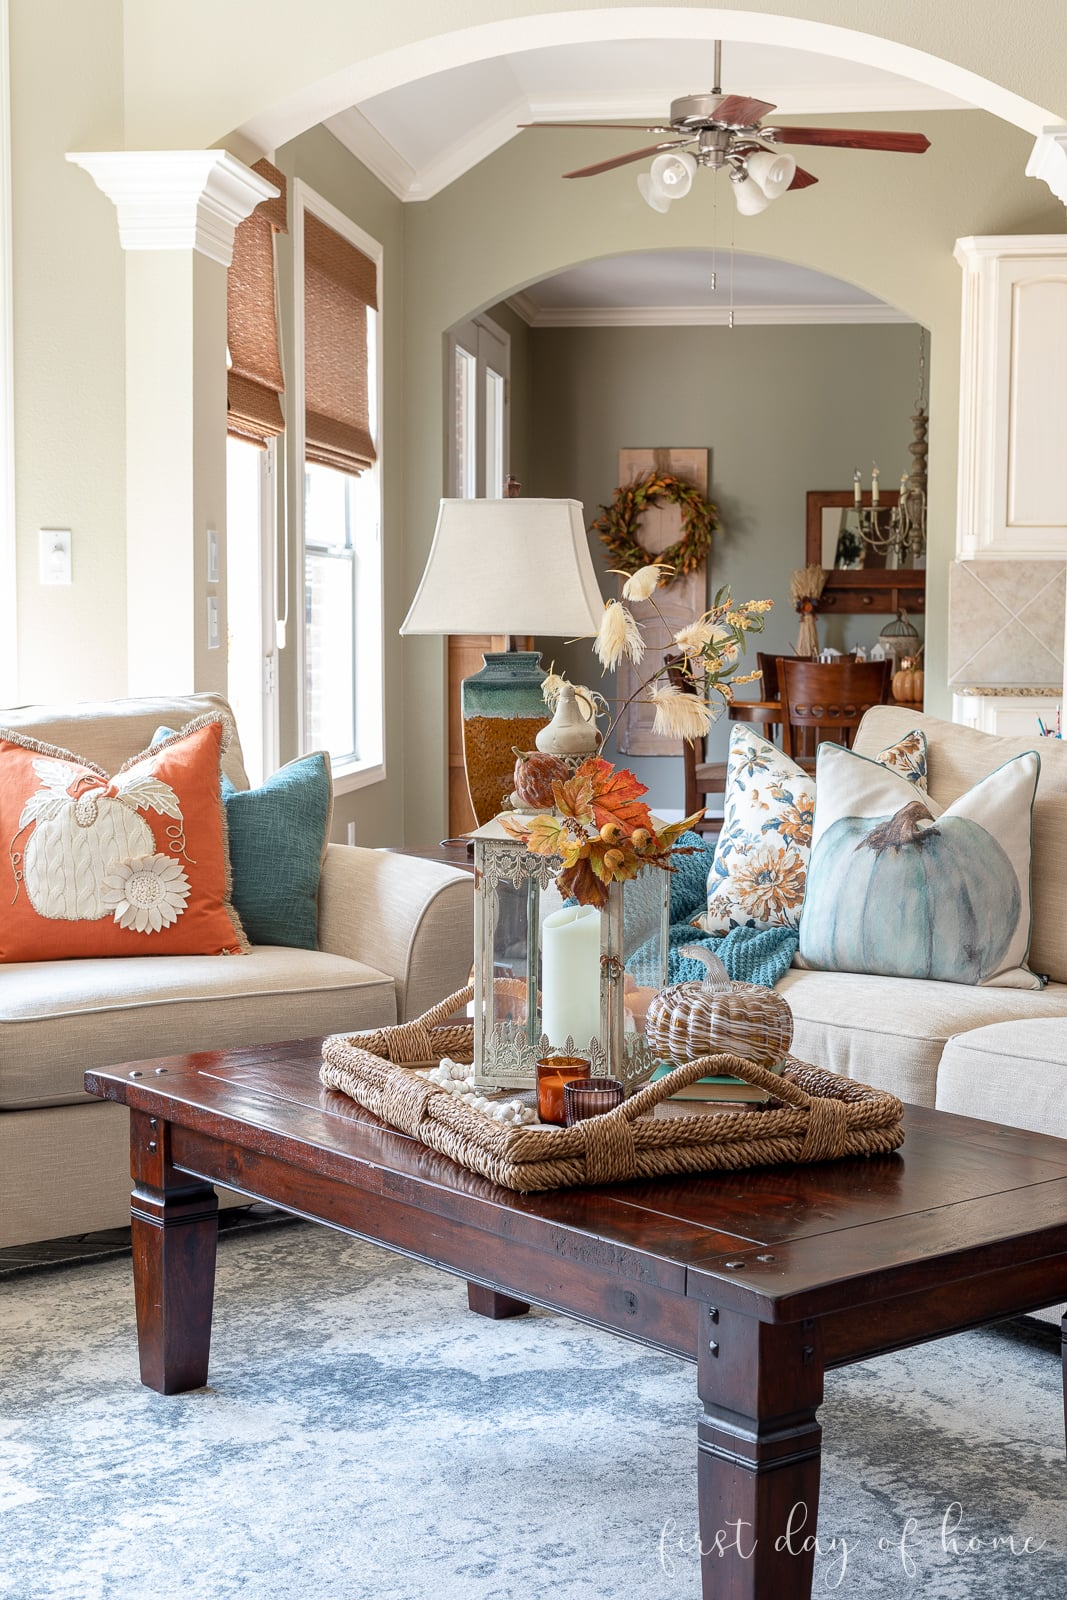 Fall living room decor with orange and aqua throw pillows and fall centerpiece on coffee table